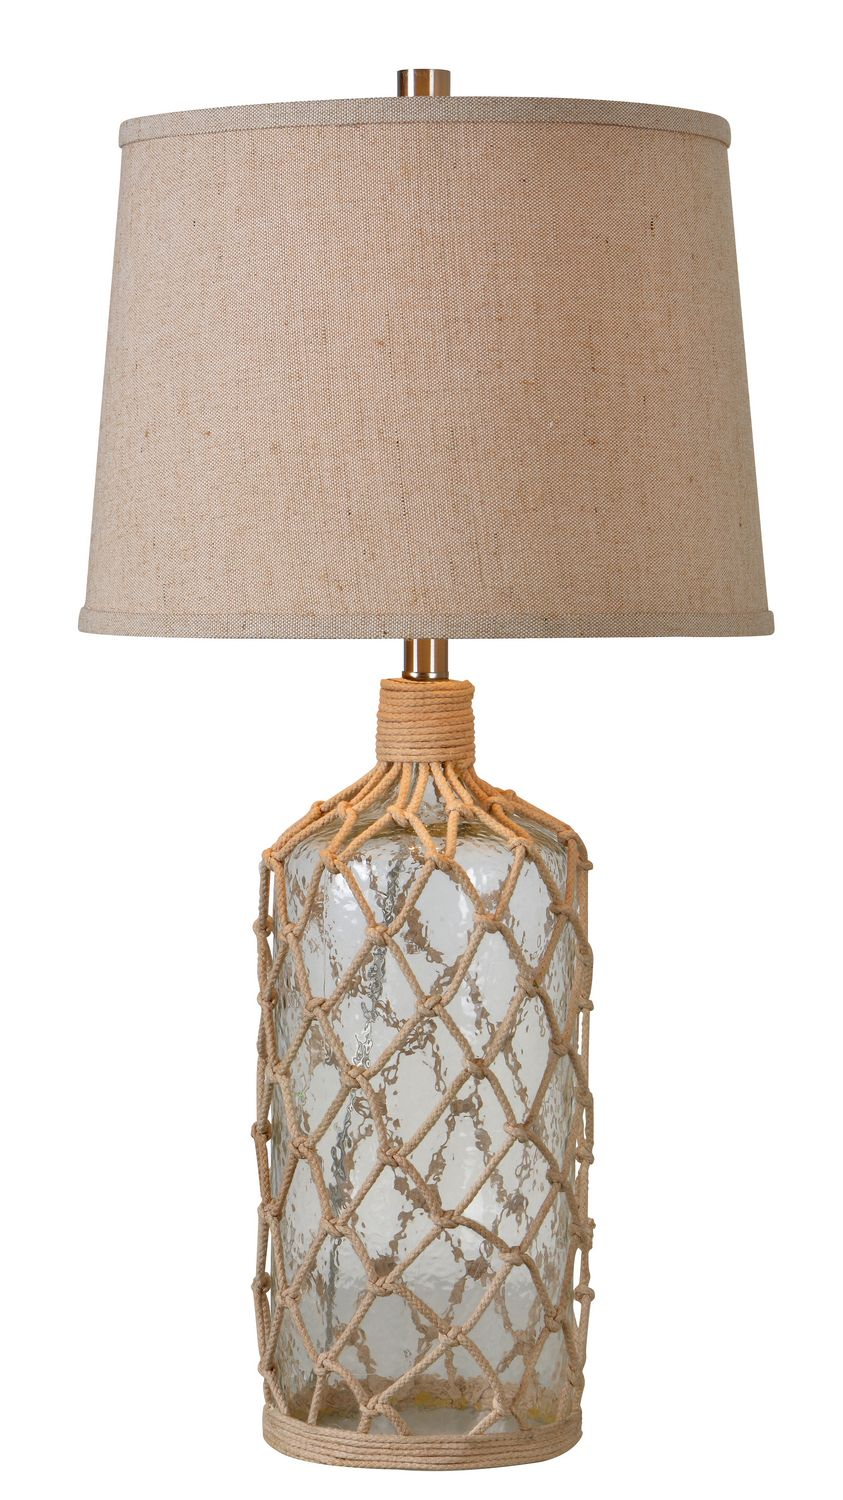 Shepard lighting lighting store art gallery mirrors lamp kenroy home 32816 captain 1 light table lamp with beige fabric shade glass and rope lamps table lamps accent lamps mozeypictures Choice Image